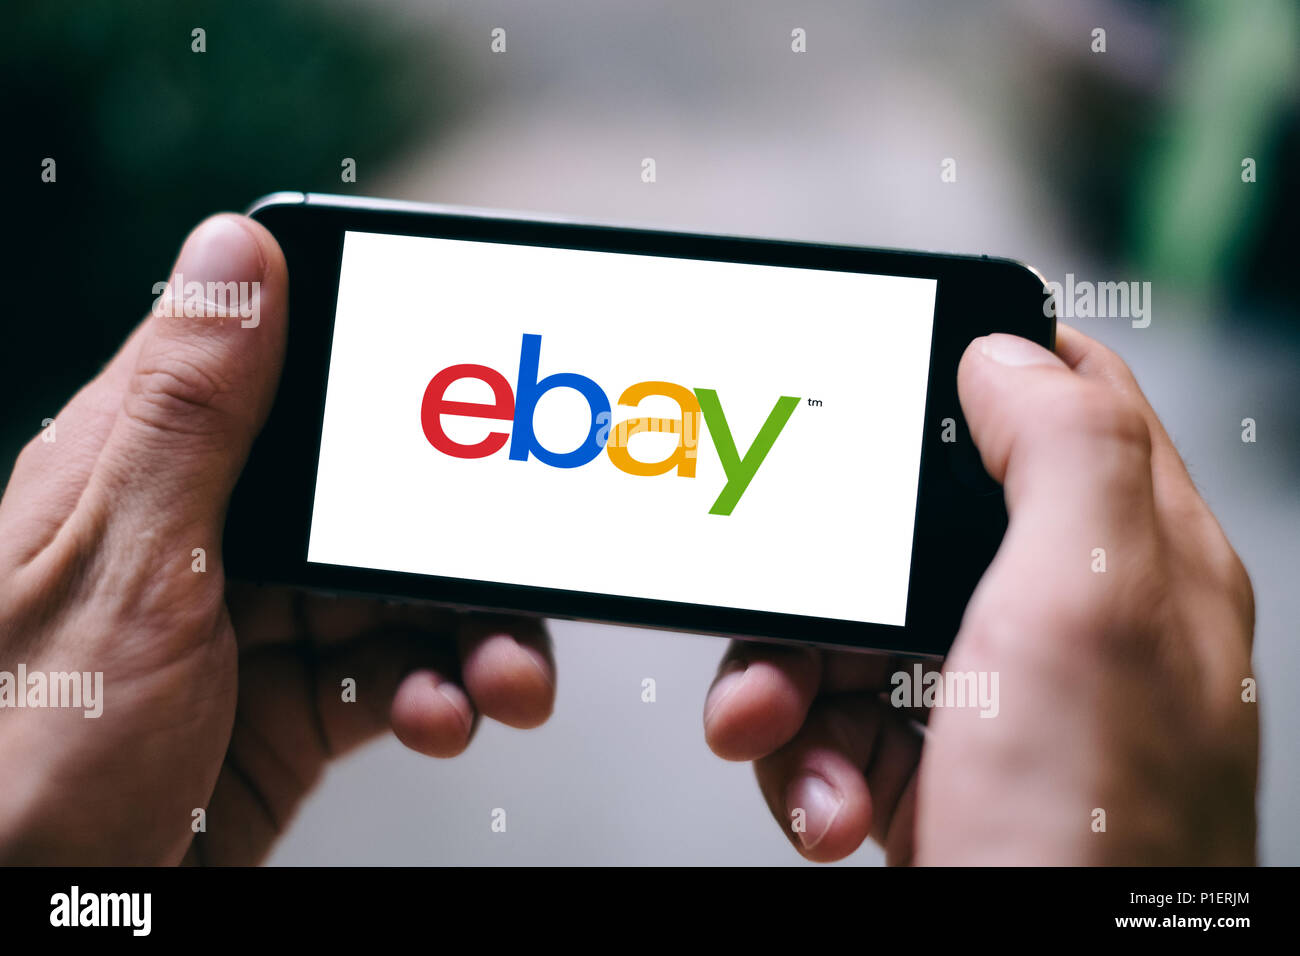 Closeup of iPhone Screen with eBay LOGO or ICON on smartphone Stock Photo